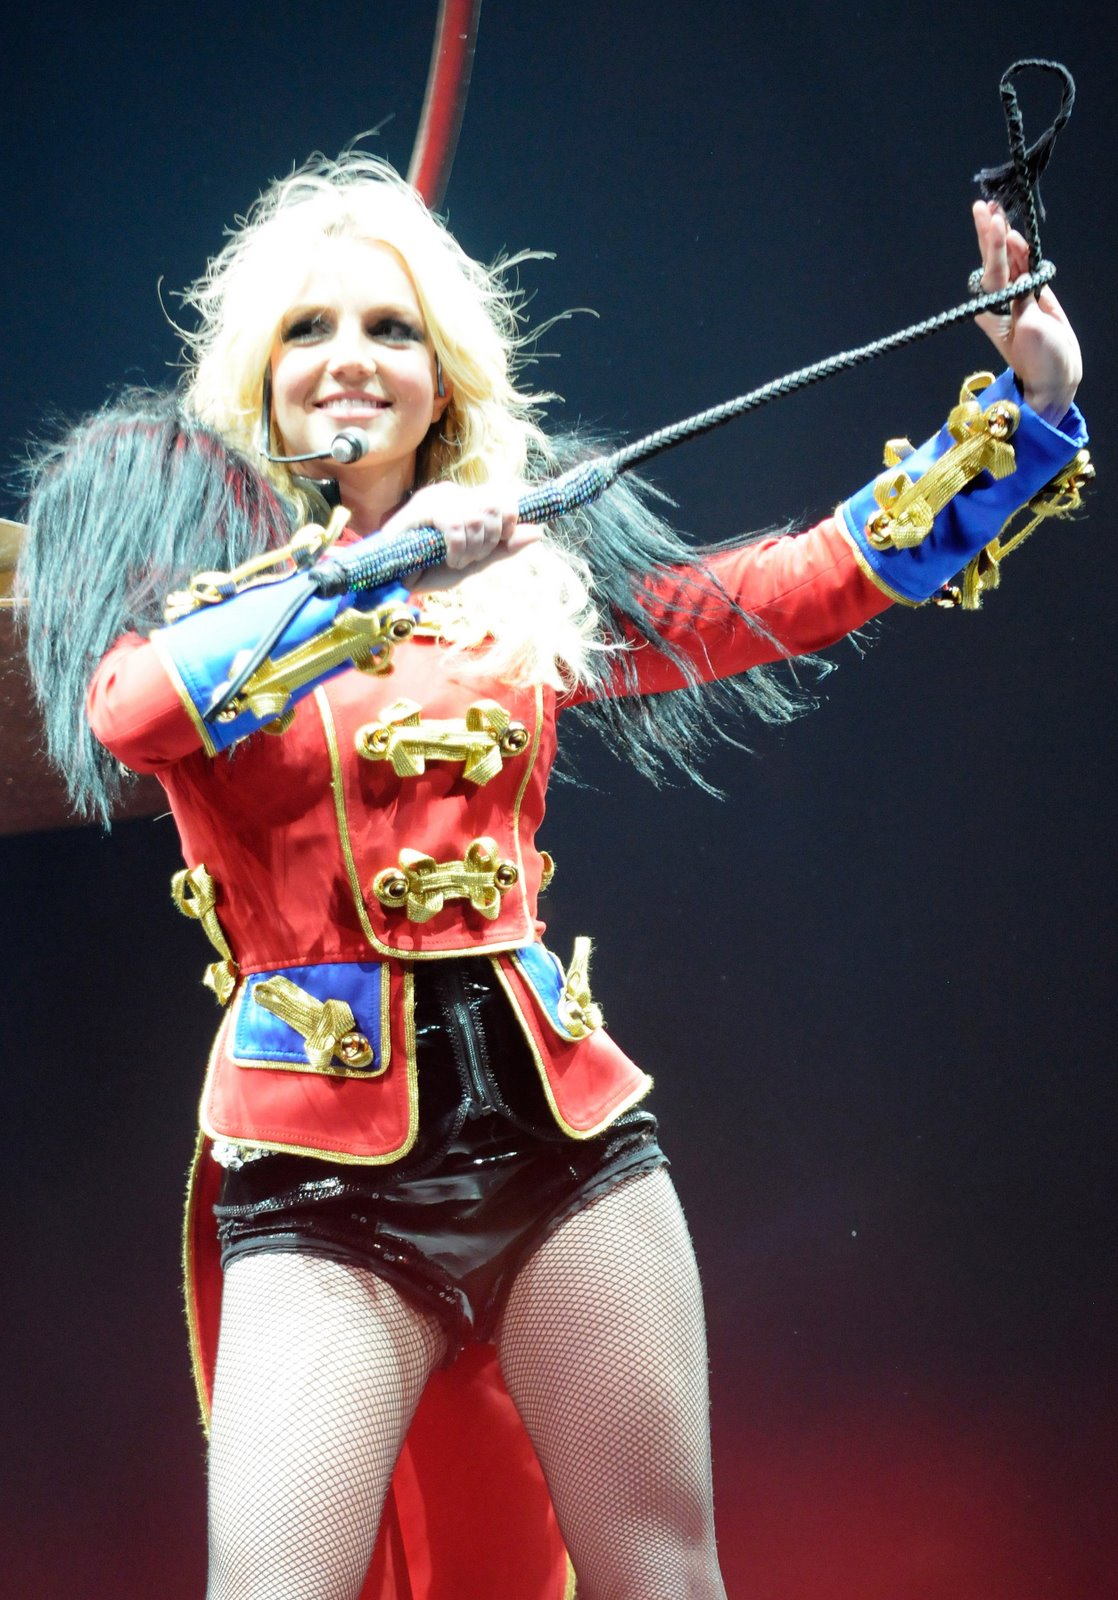 [70543_babayaga_Britney_Spears_The_Circus_Starring_Britney_Spears_Performance_03-03-2009_027_123_559lo.jpg]